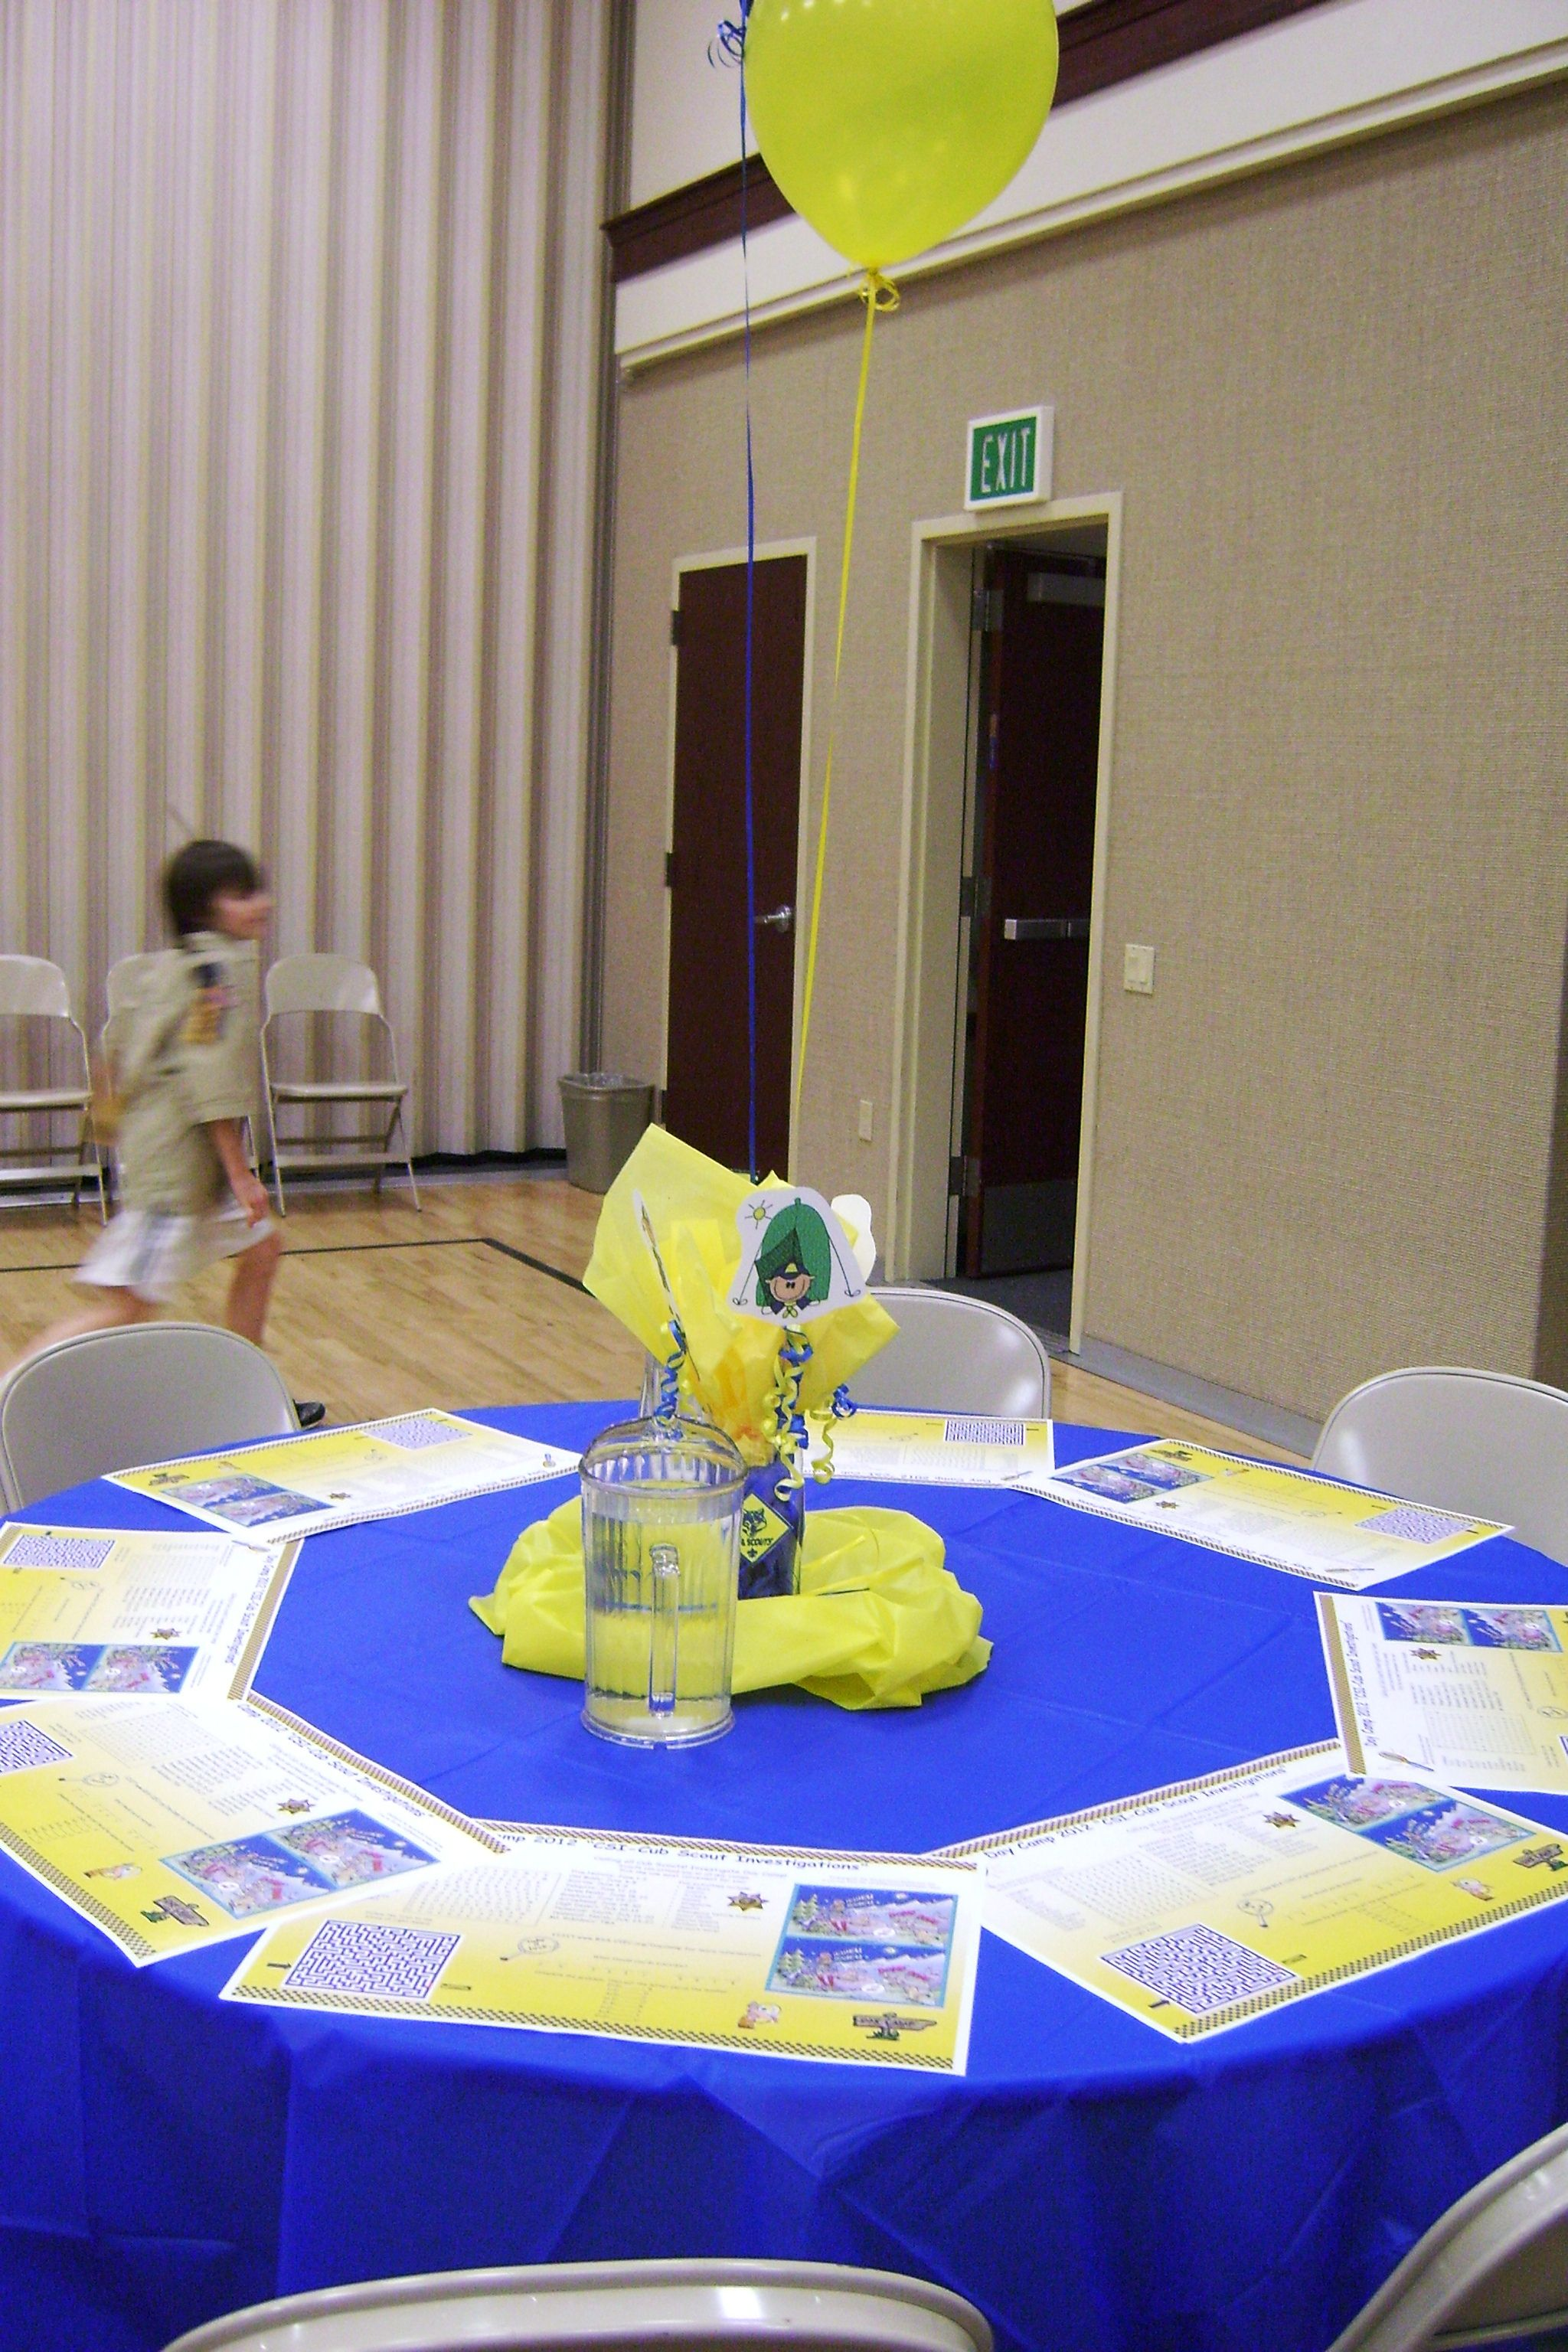 Cub Scout Decorations Blue Amp Gold Dinner